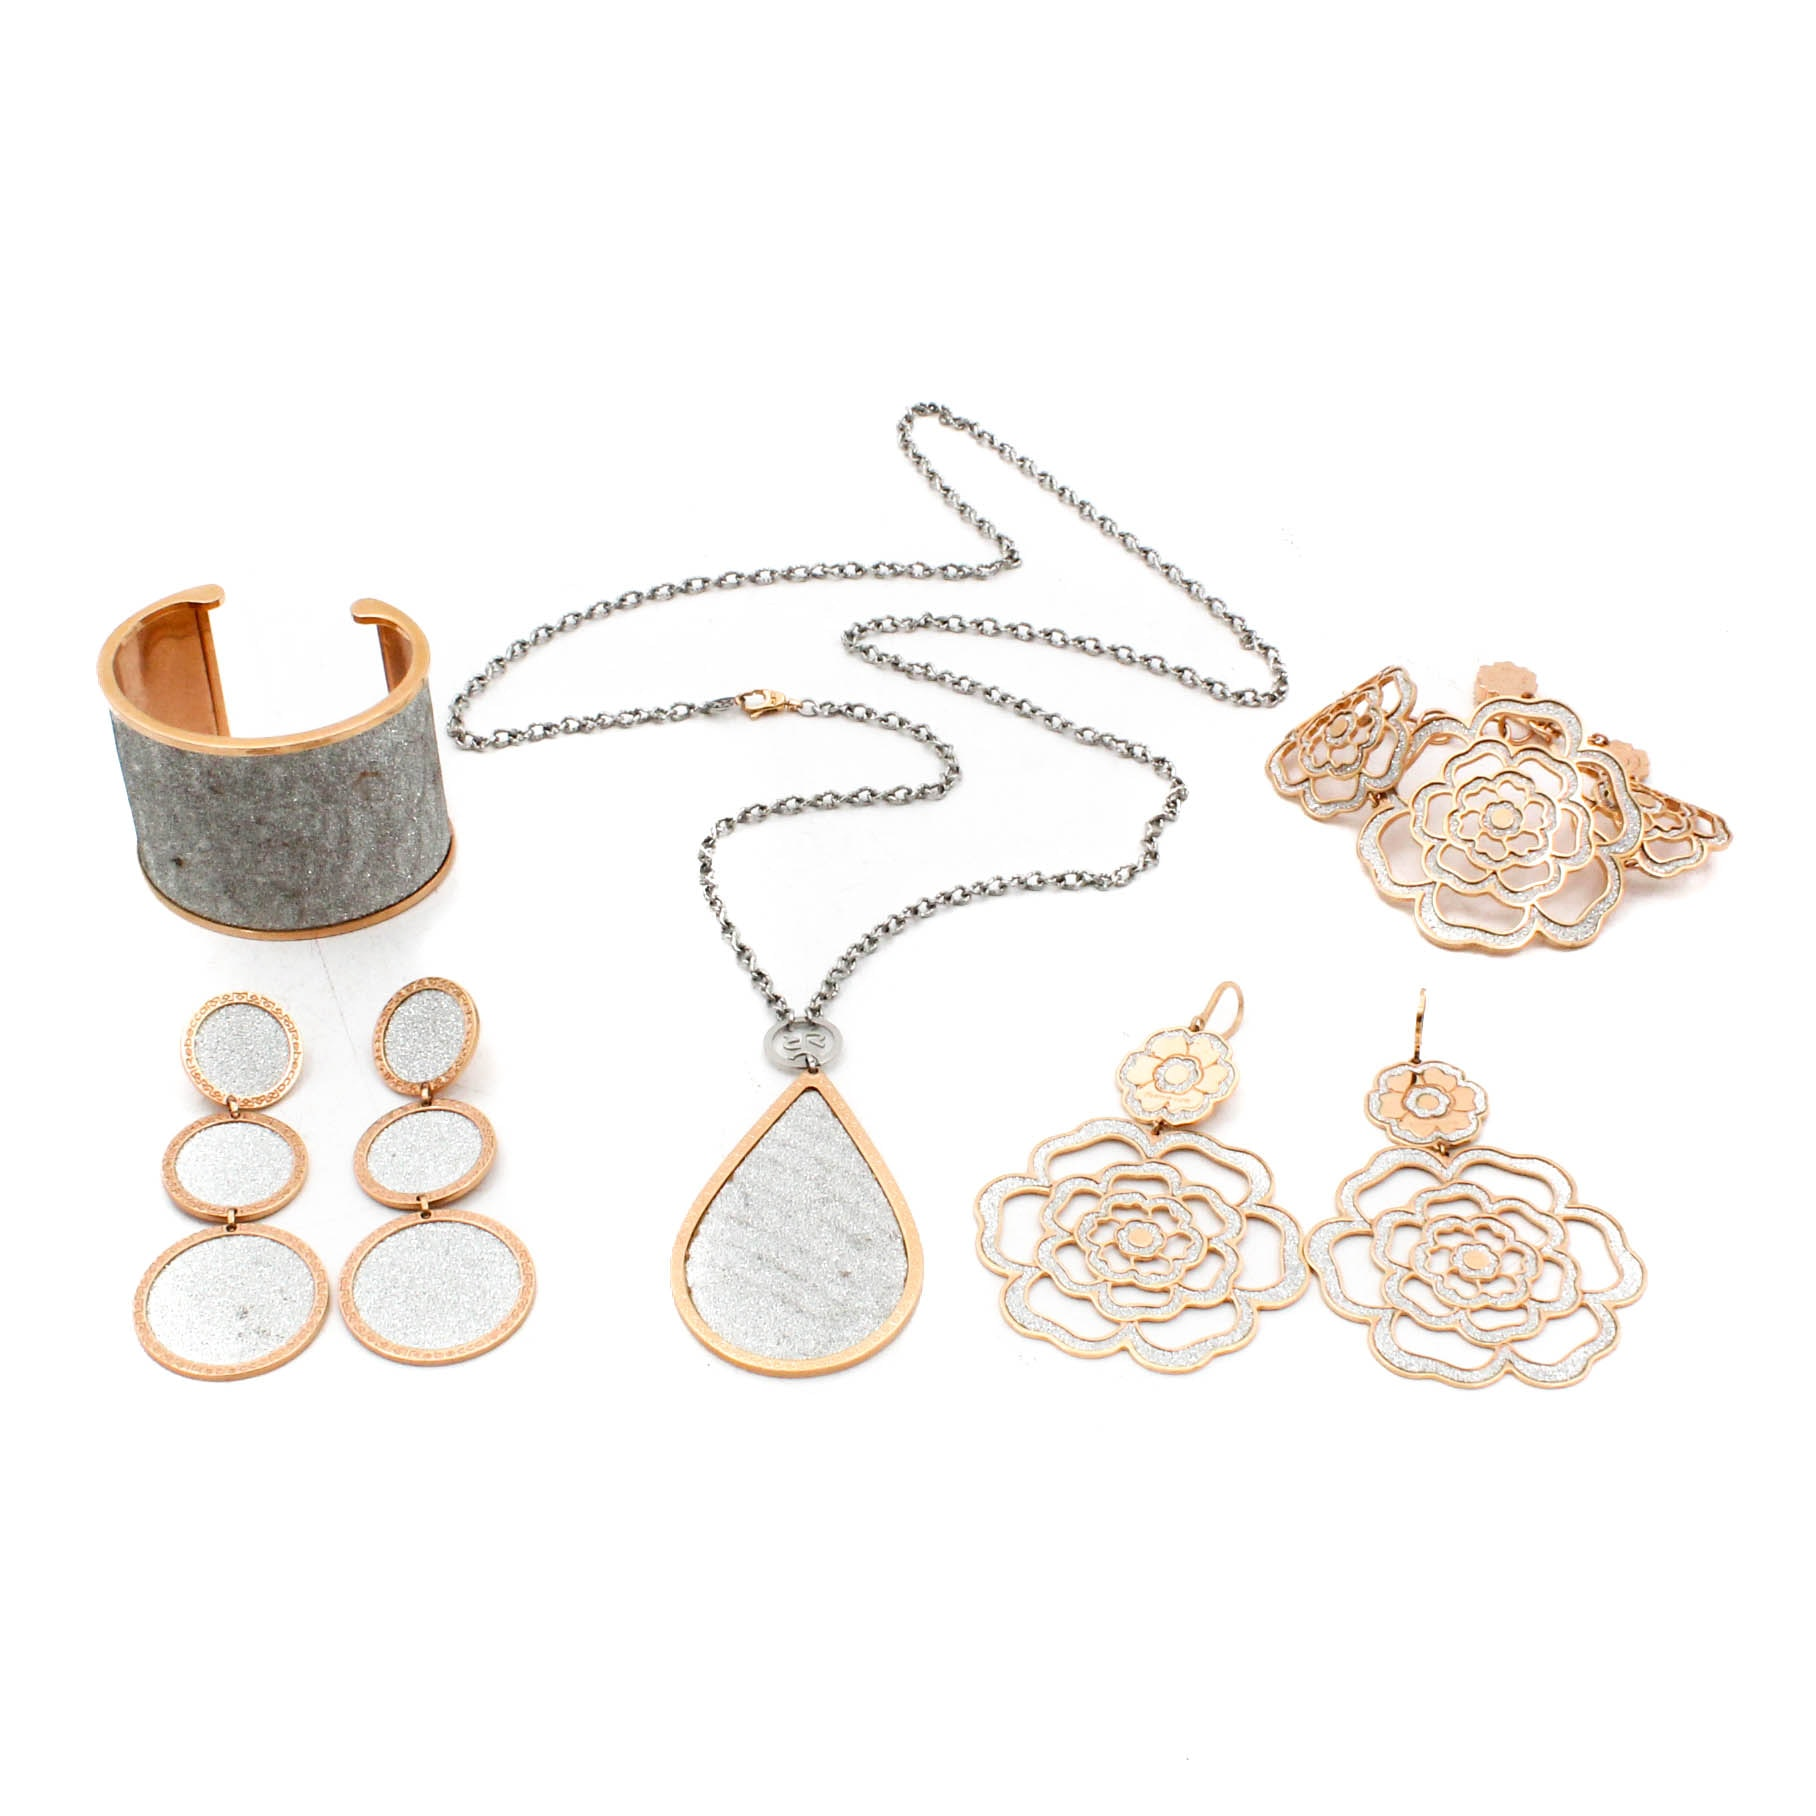 Gold Tone Costume Jewelry Featuring Rebecca